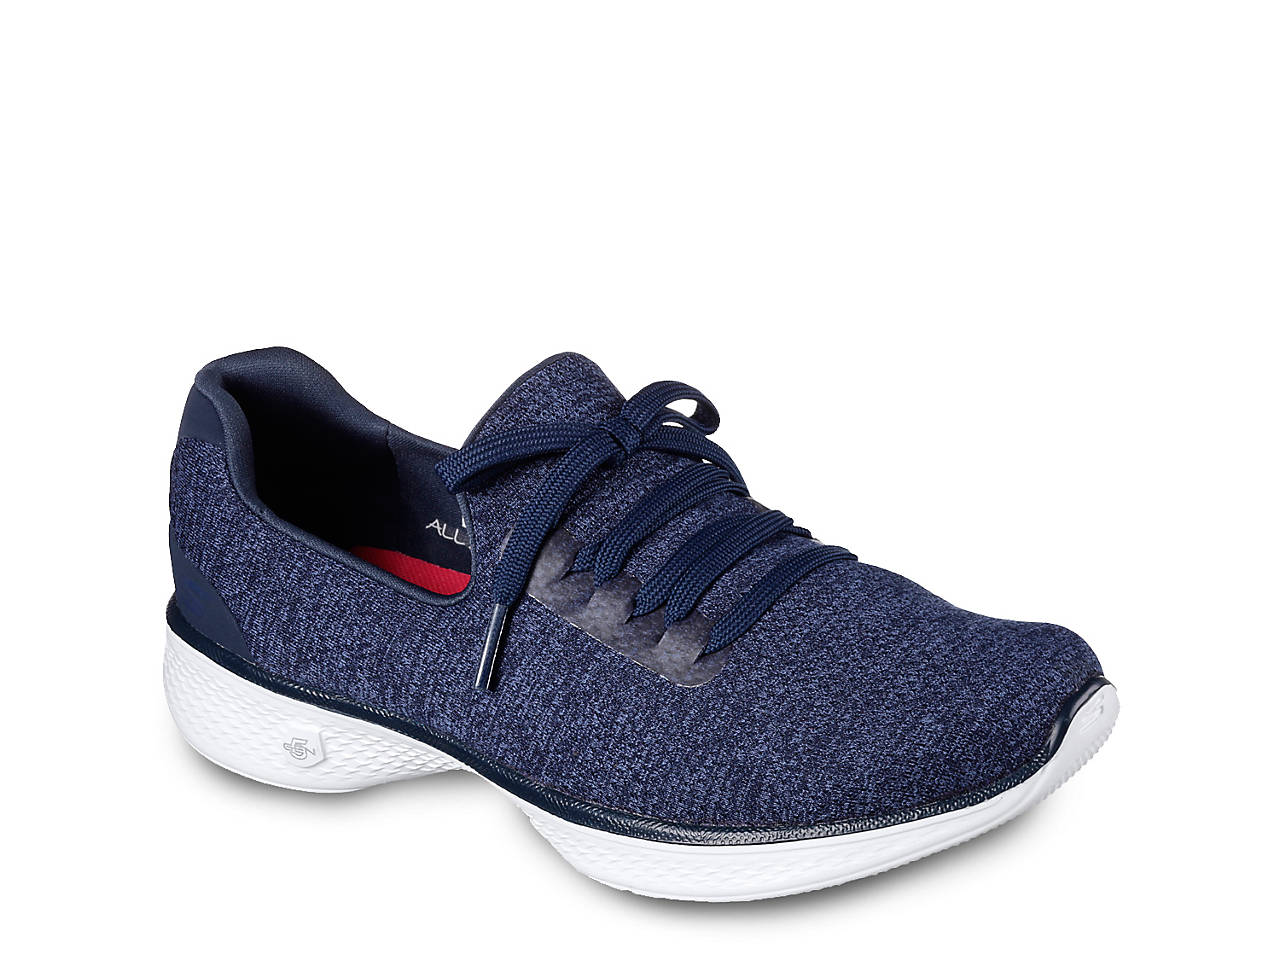 Best Womens Running Shoes For Overweight